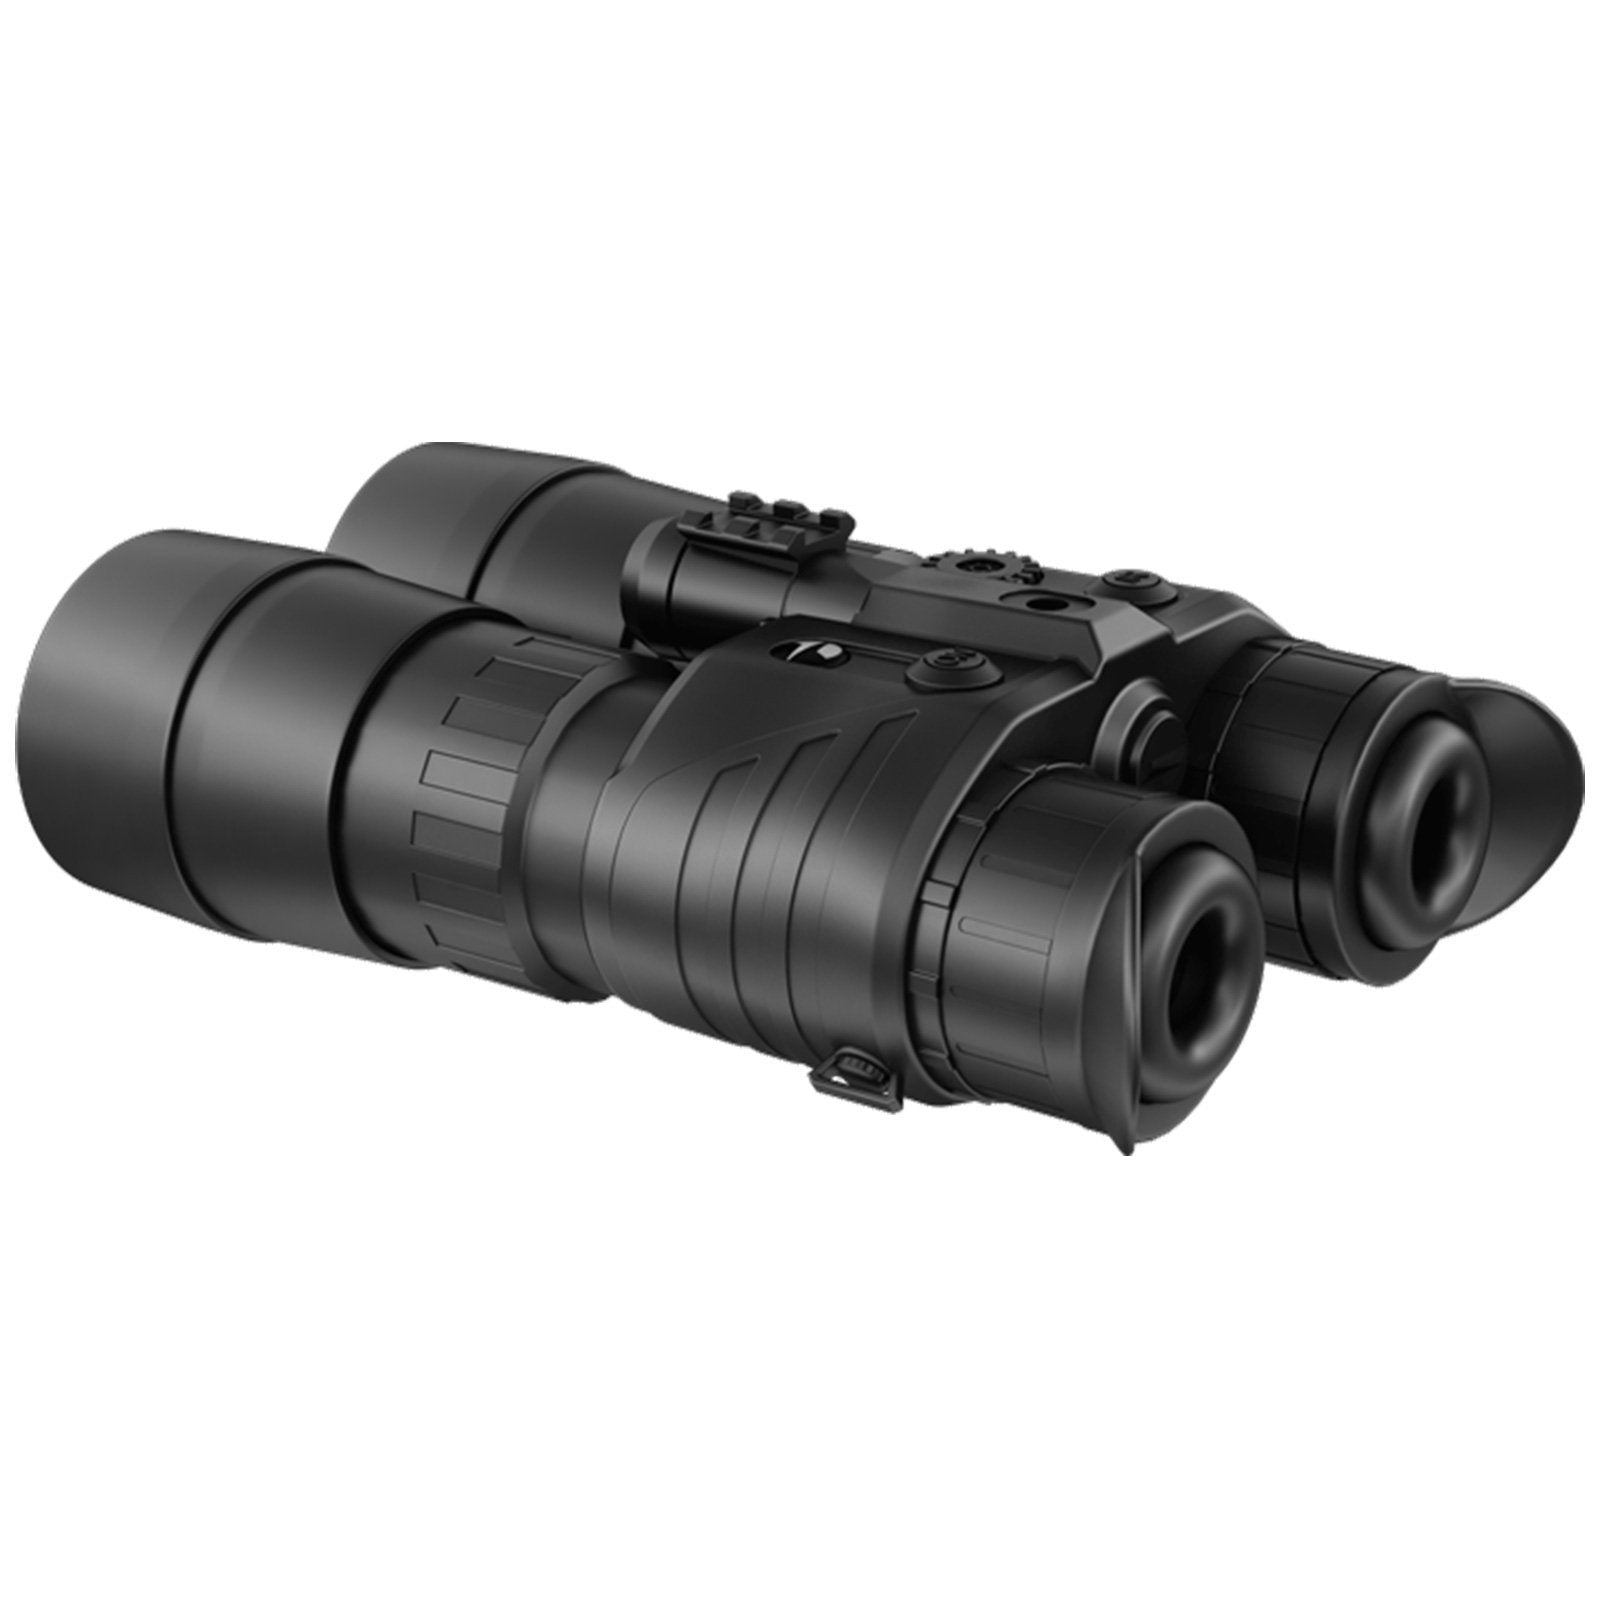 Pulsar Edge GS 2.7x50 Night Vision Binoculars | UKMCPro